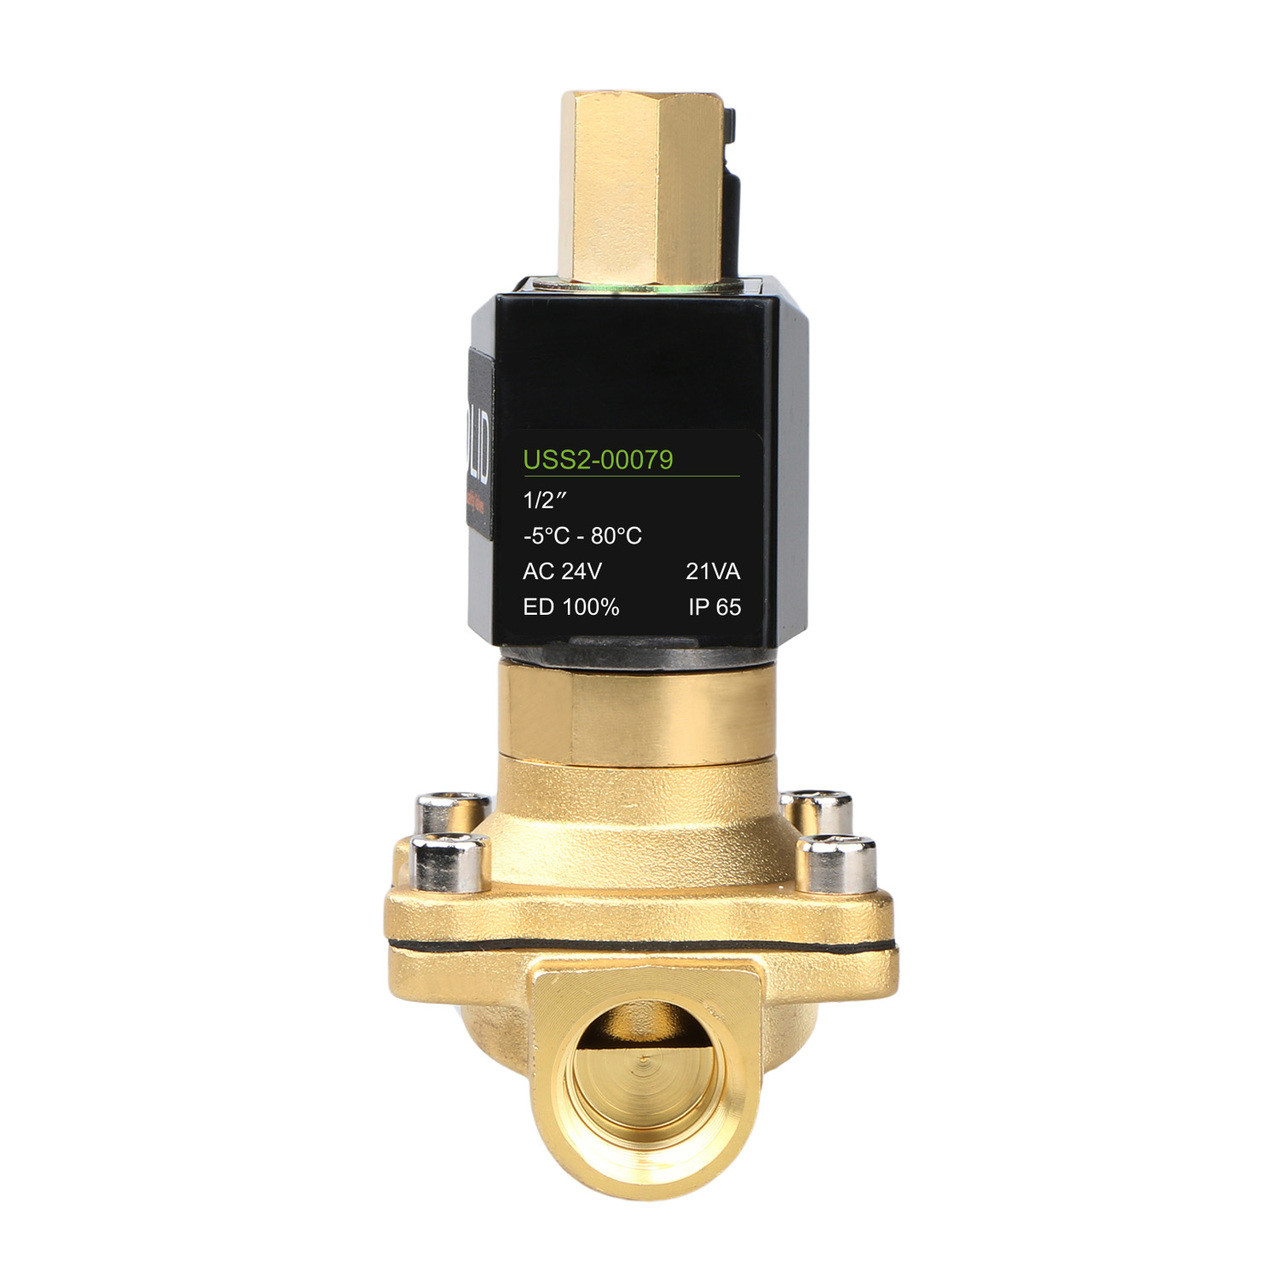 "USSOLID Electric Solenoid Valve- 1/2"" 24V AC Solenoid Valve Brass Body Normally Open, NBR SEAL"